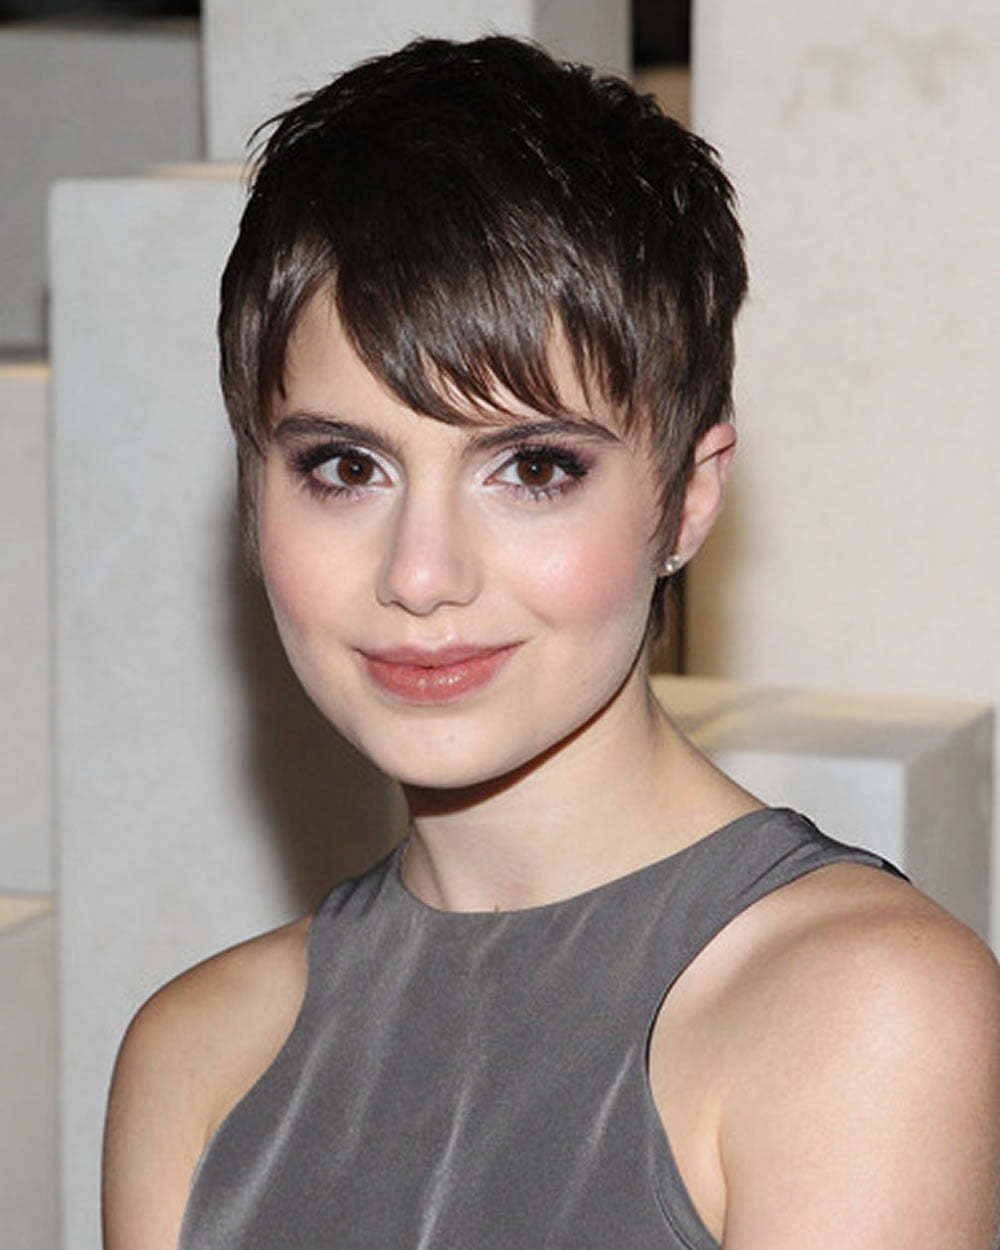 shortish hair styles hairstyles amp hair colors for pixie hair 5496